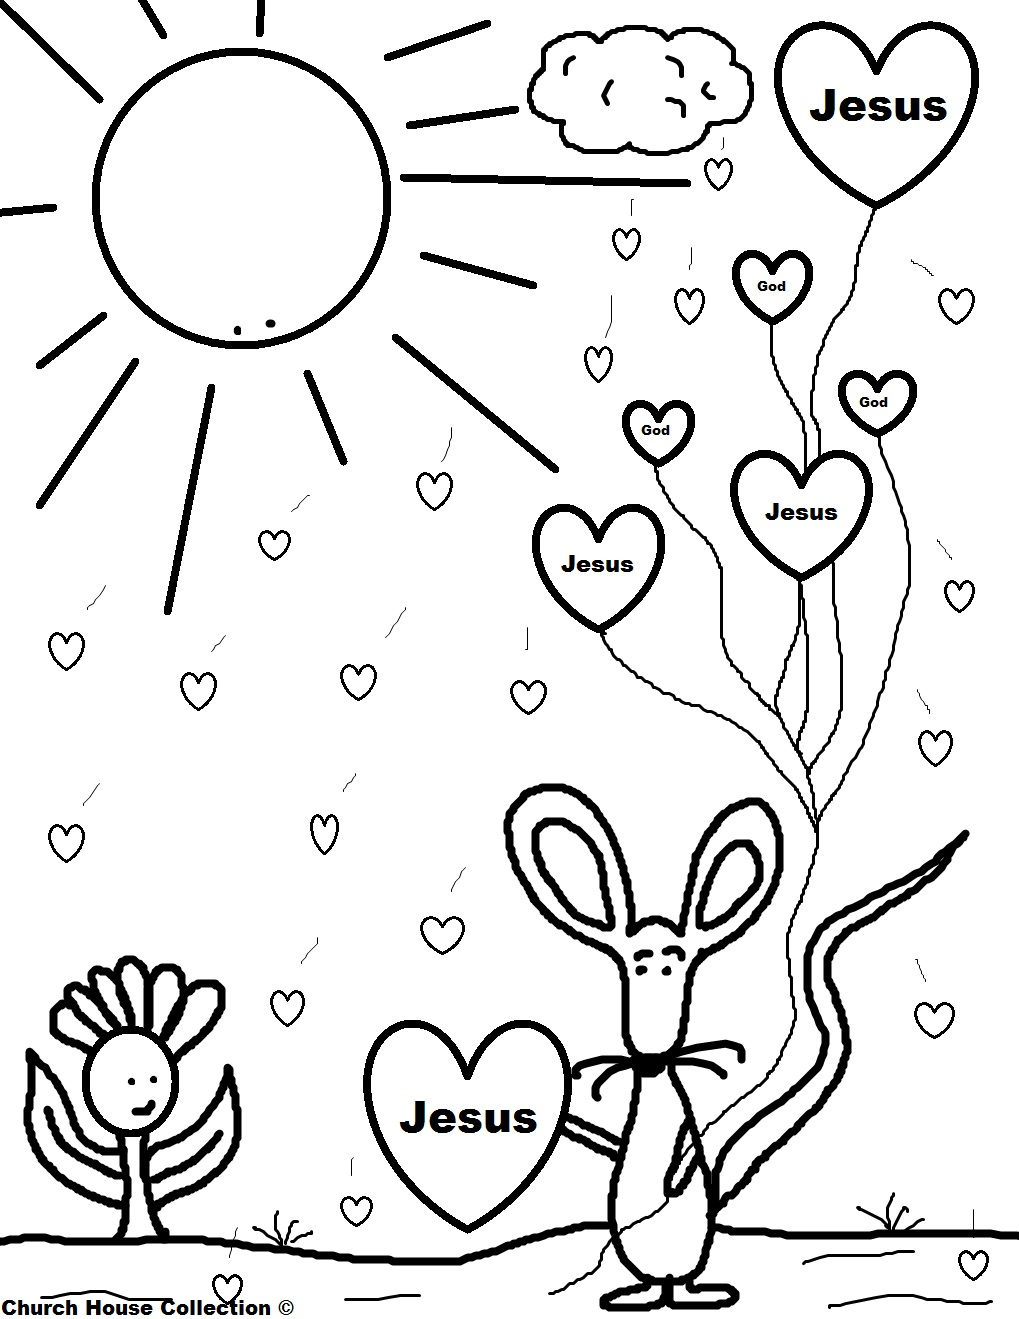 Best Easter Coloring Pages Whats in the Bible - free printable coloring pages of jesus